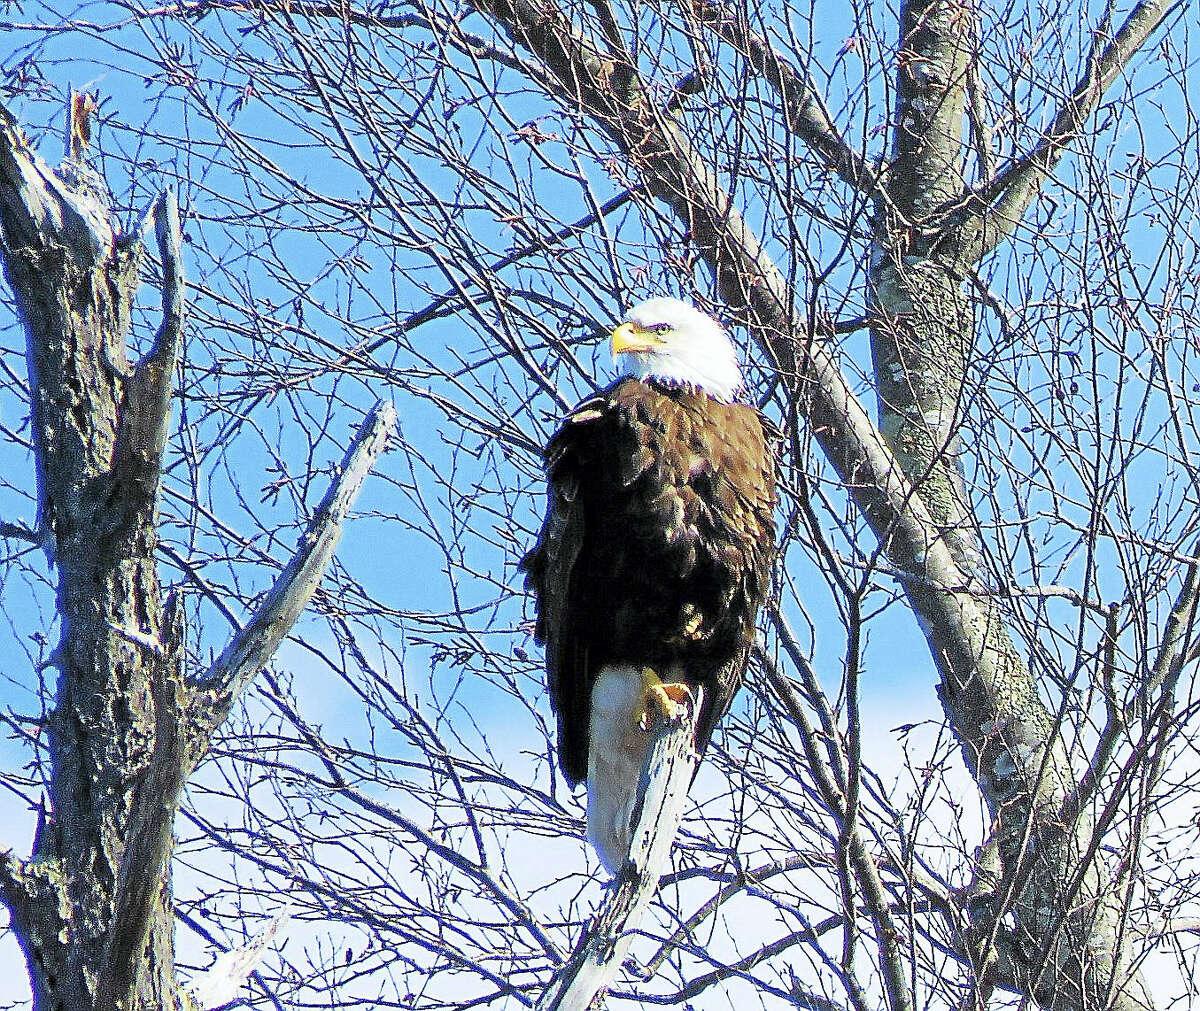 Connecticut River Expeditions RiverQuest offers cruises in April, providing an opportunity to see wildlife in its natural habitat.